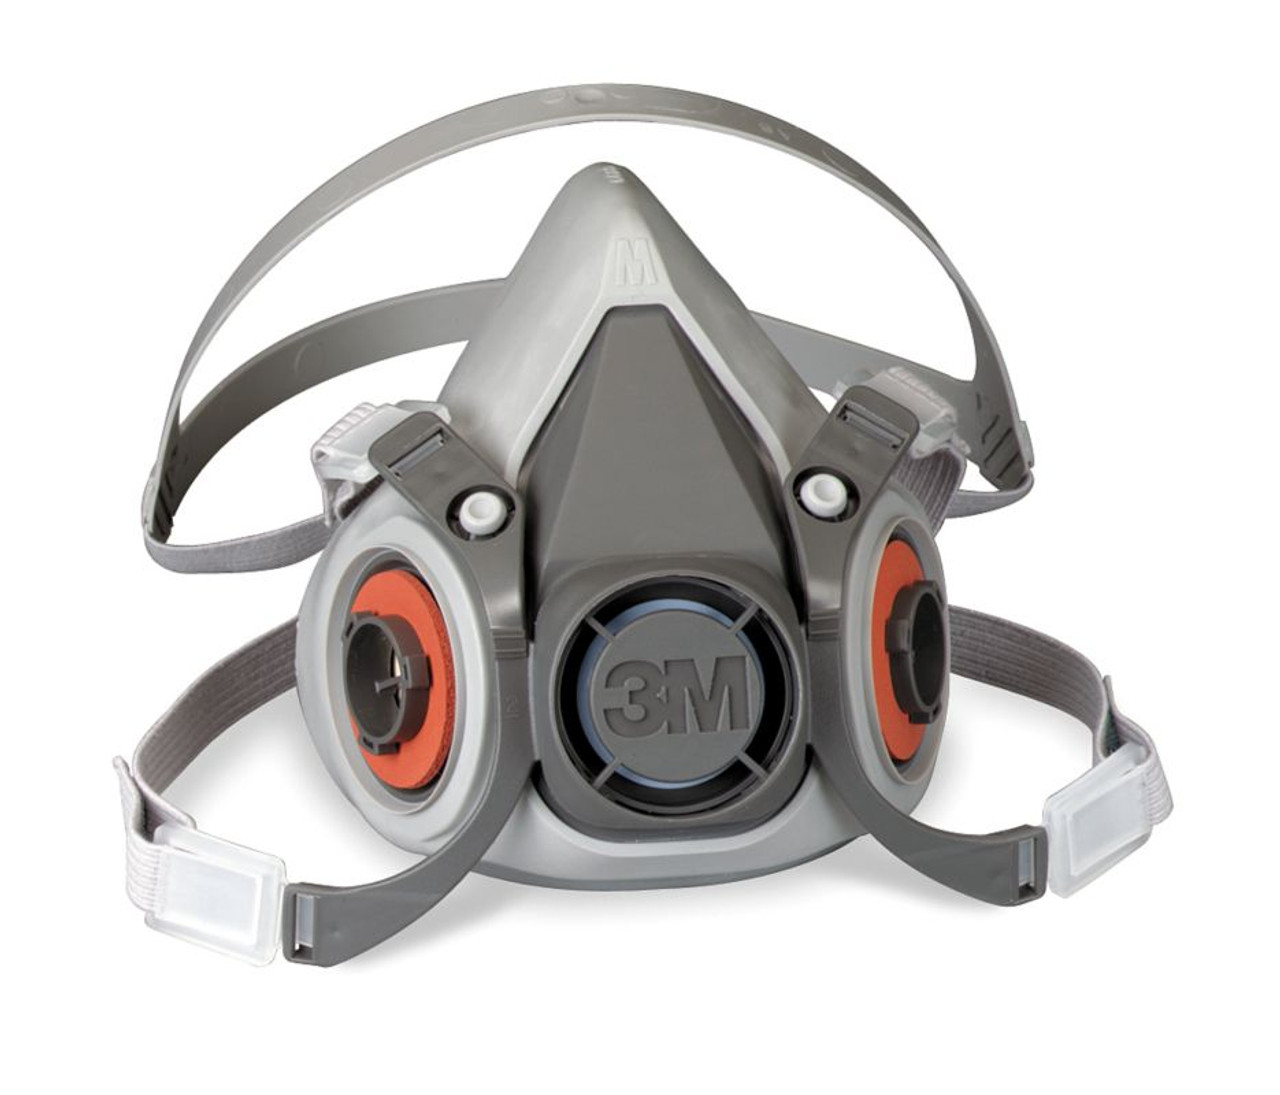 3m p100 full face respirator mask